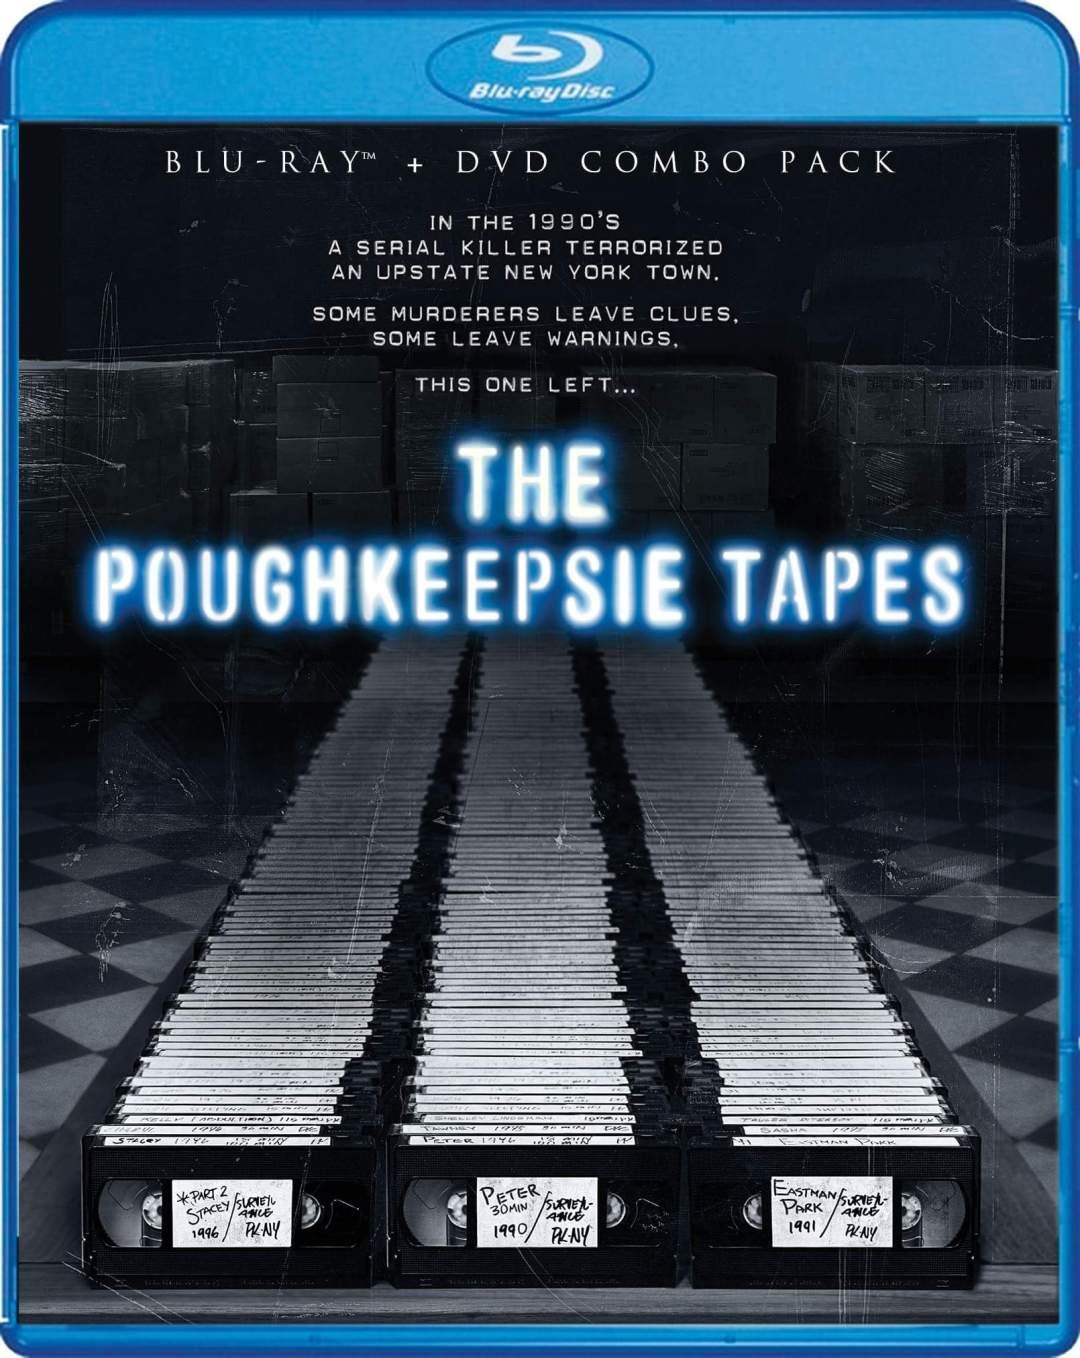 'The Poughkeepsie Tapes' are Coming!